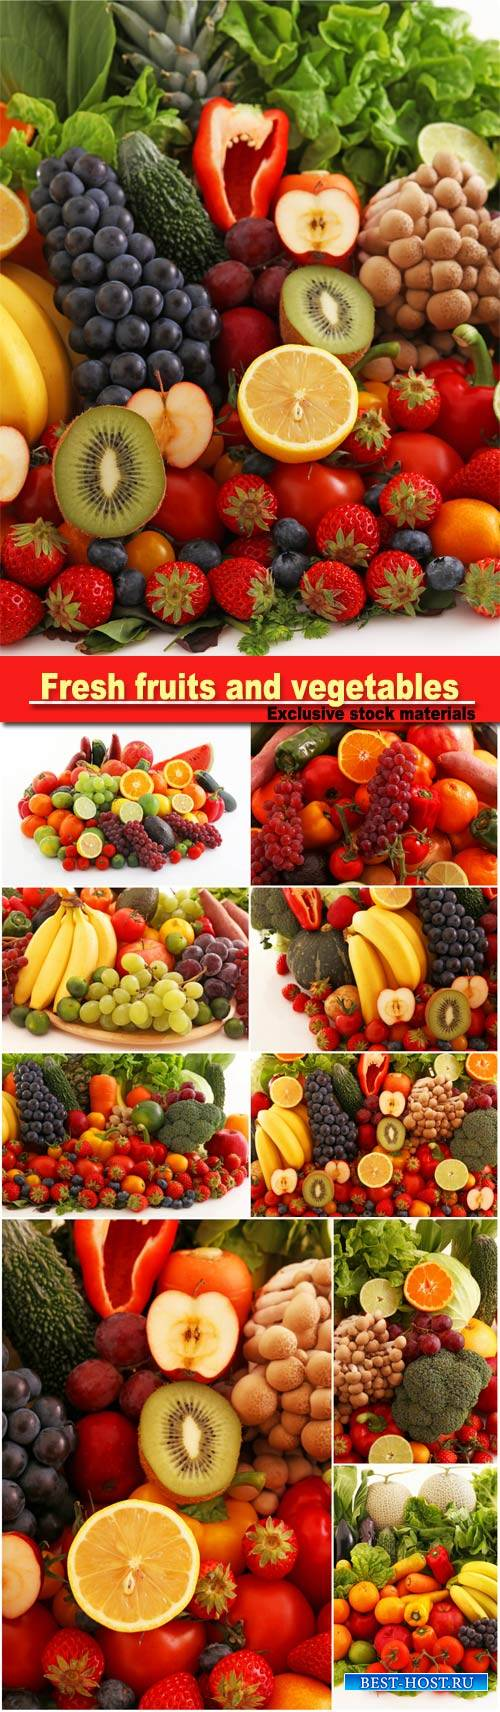 Fresh fruits and vegetables, grapes, bananas, oranges, kiwi